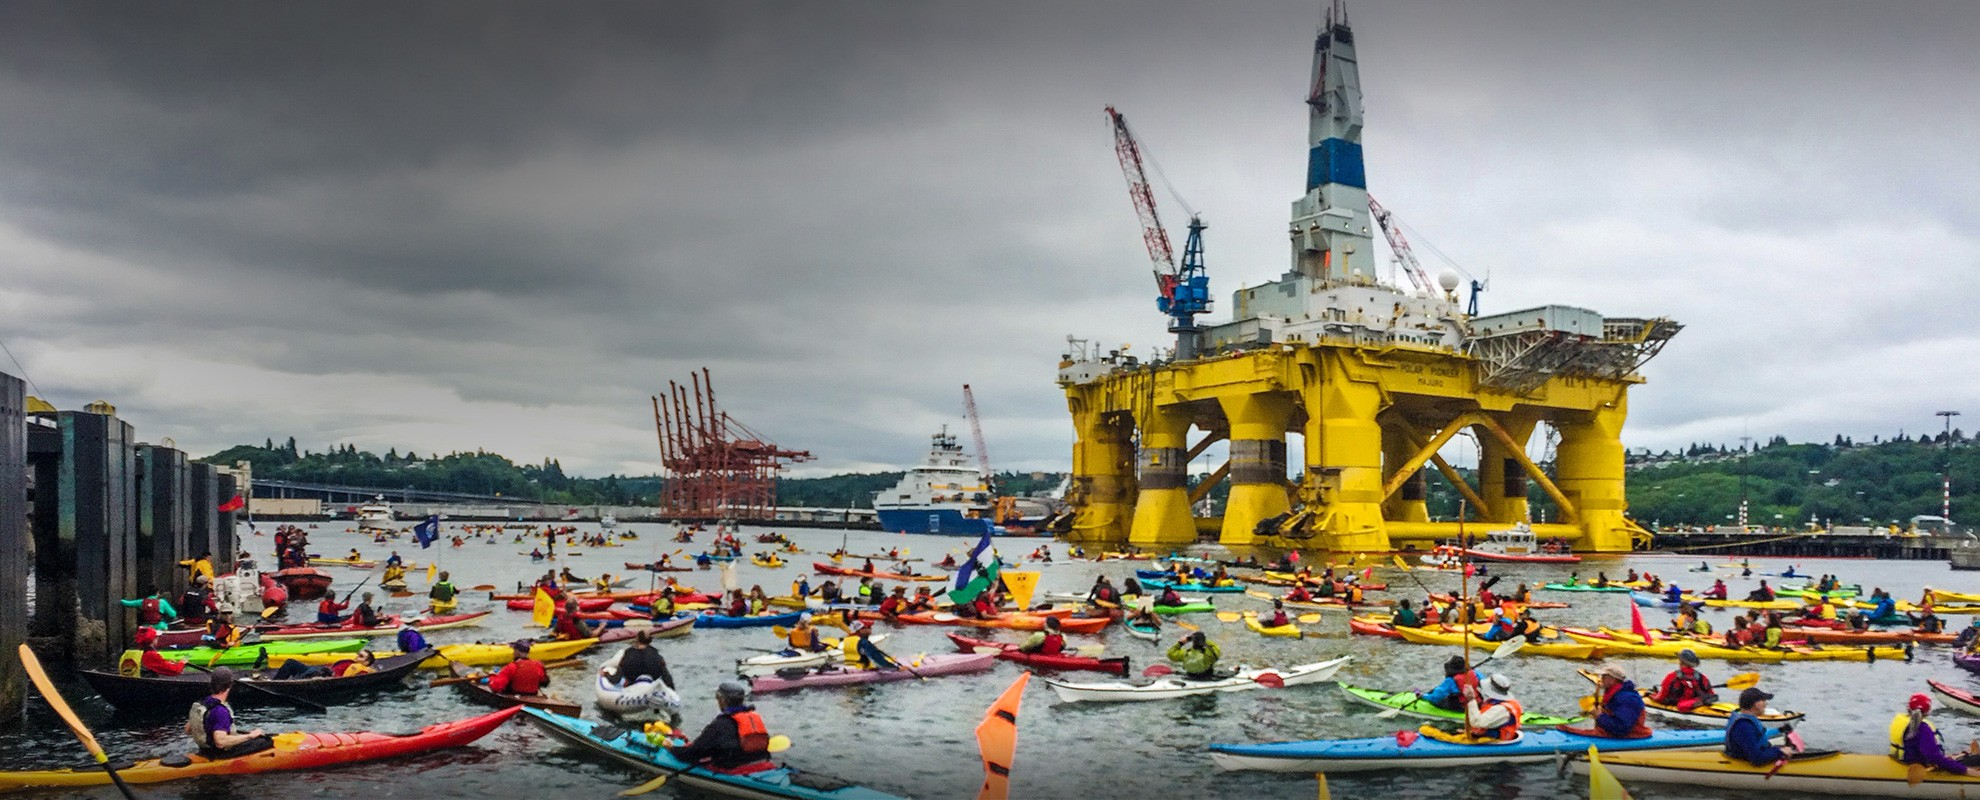 Hundreds of kayaktivists swarm Shell Oil's drilling rig Polar Pioneer, as it arrives in Elliot Bay at the Port of Seattle on May 15, 2015.